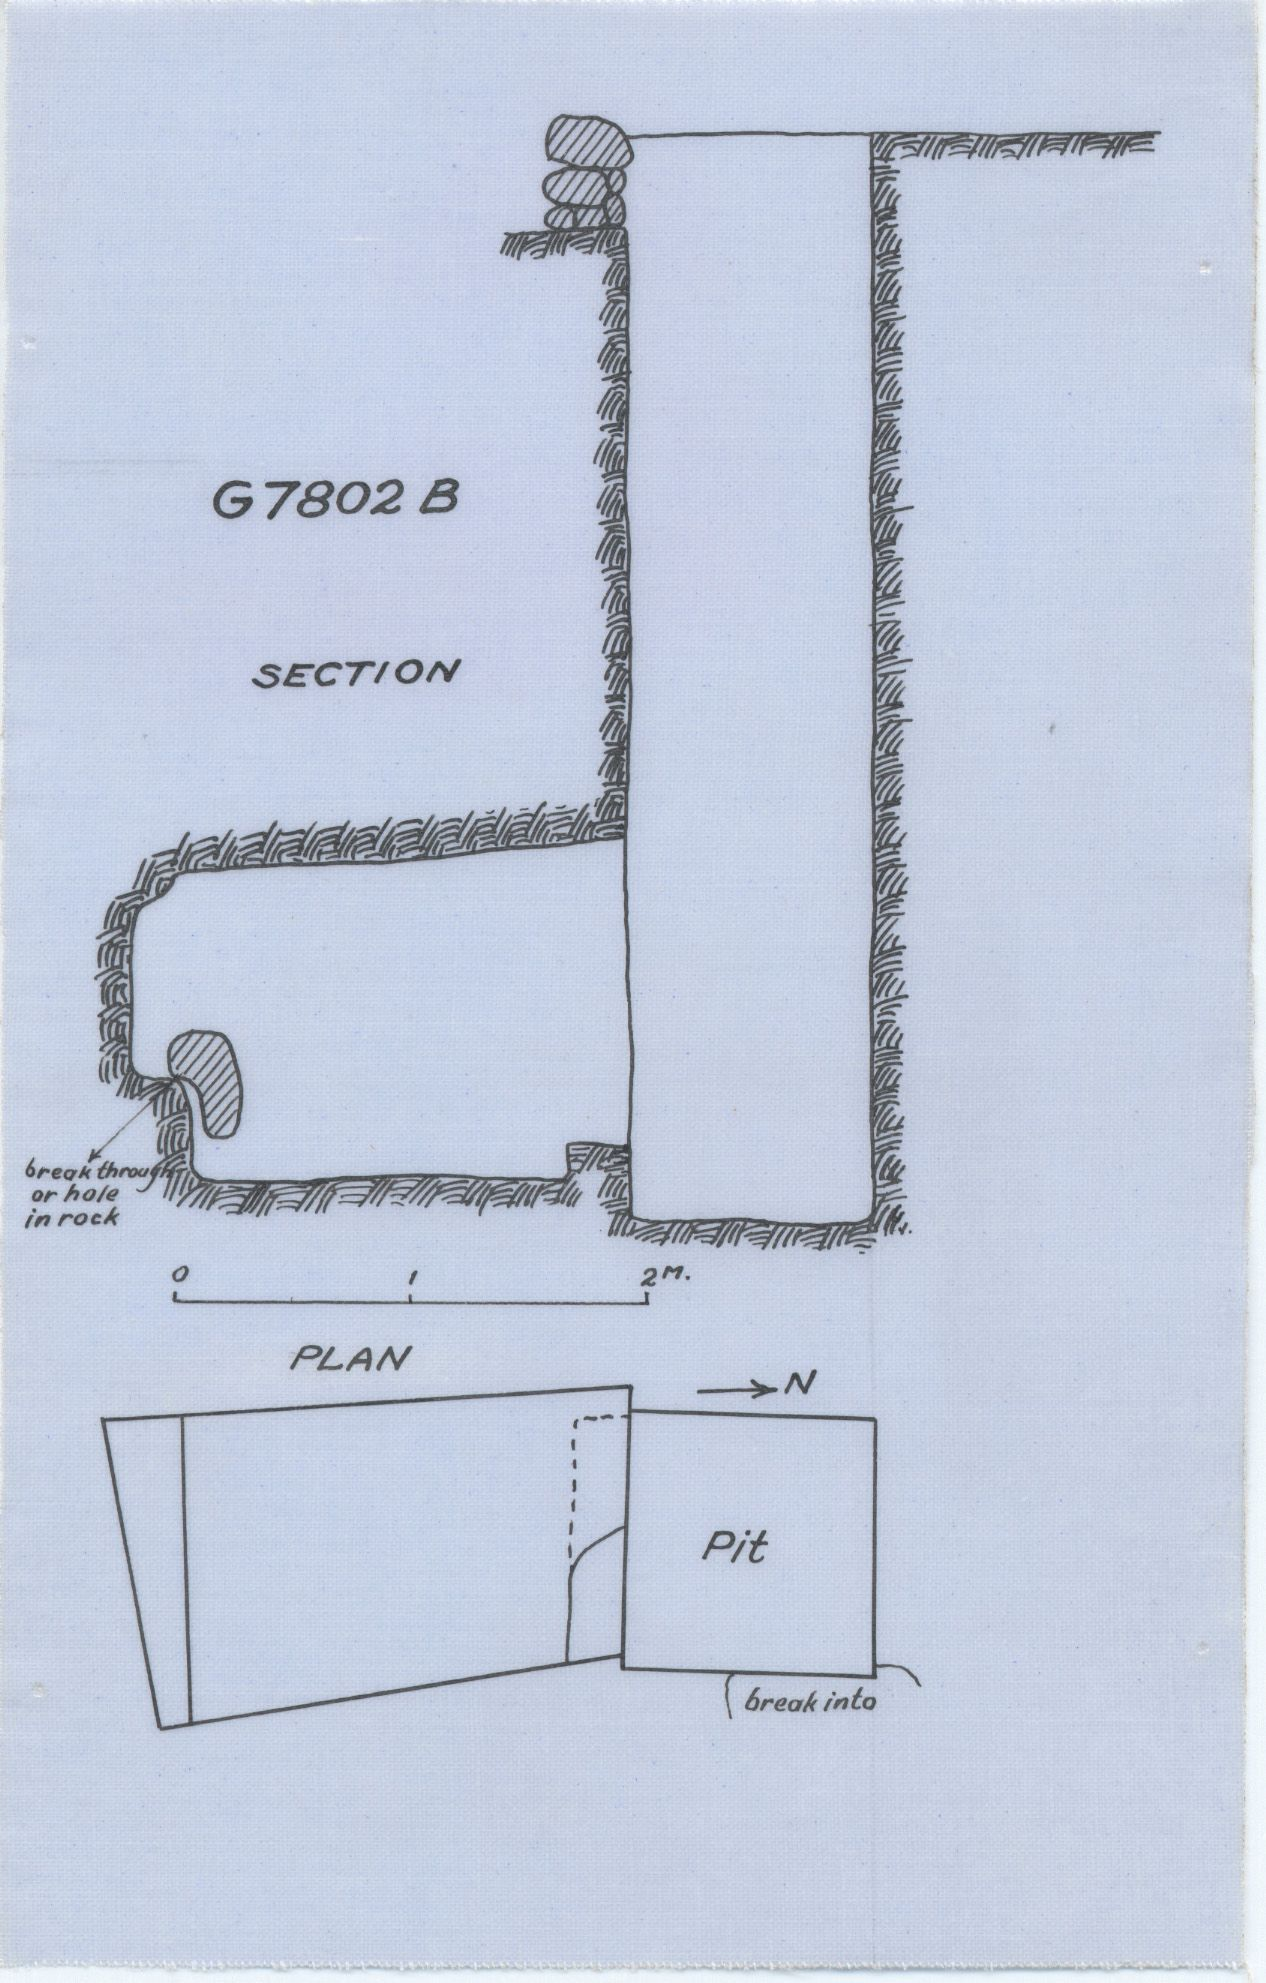 Maps and plans: G 7802, Shaft B